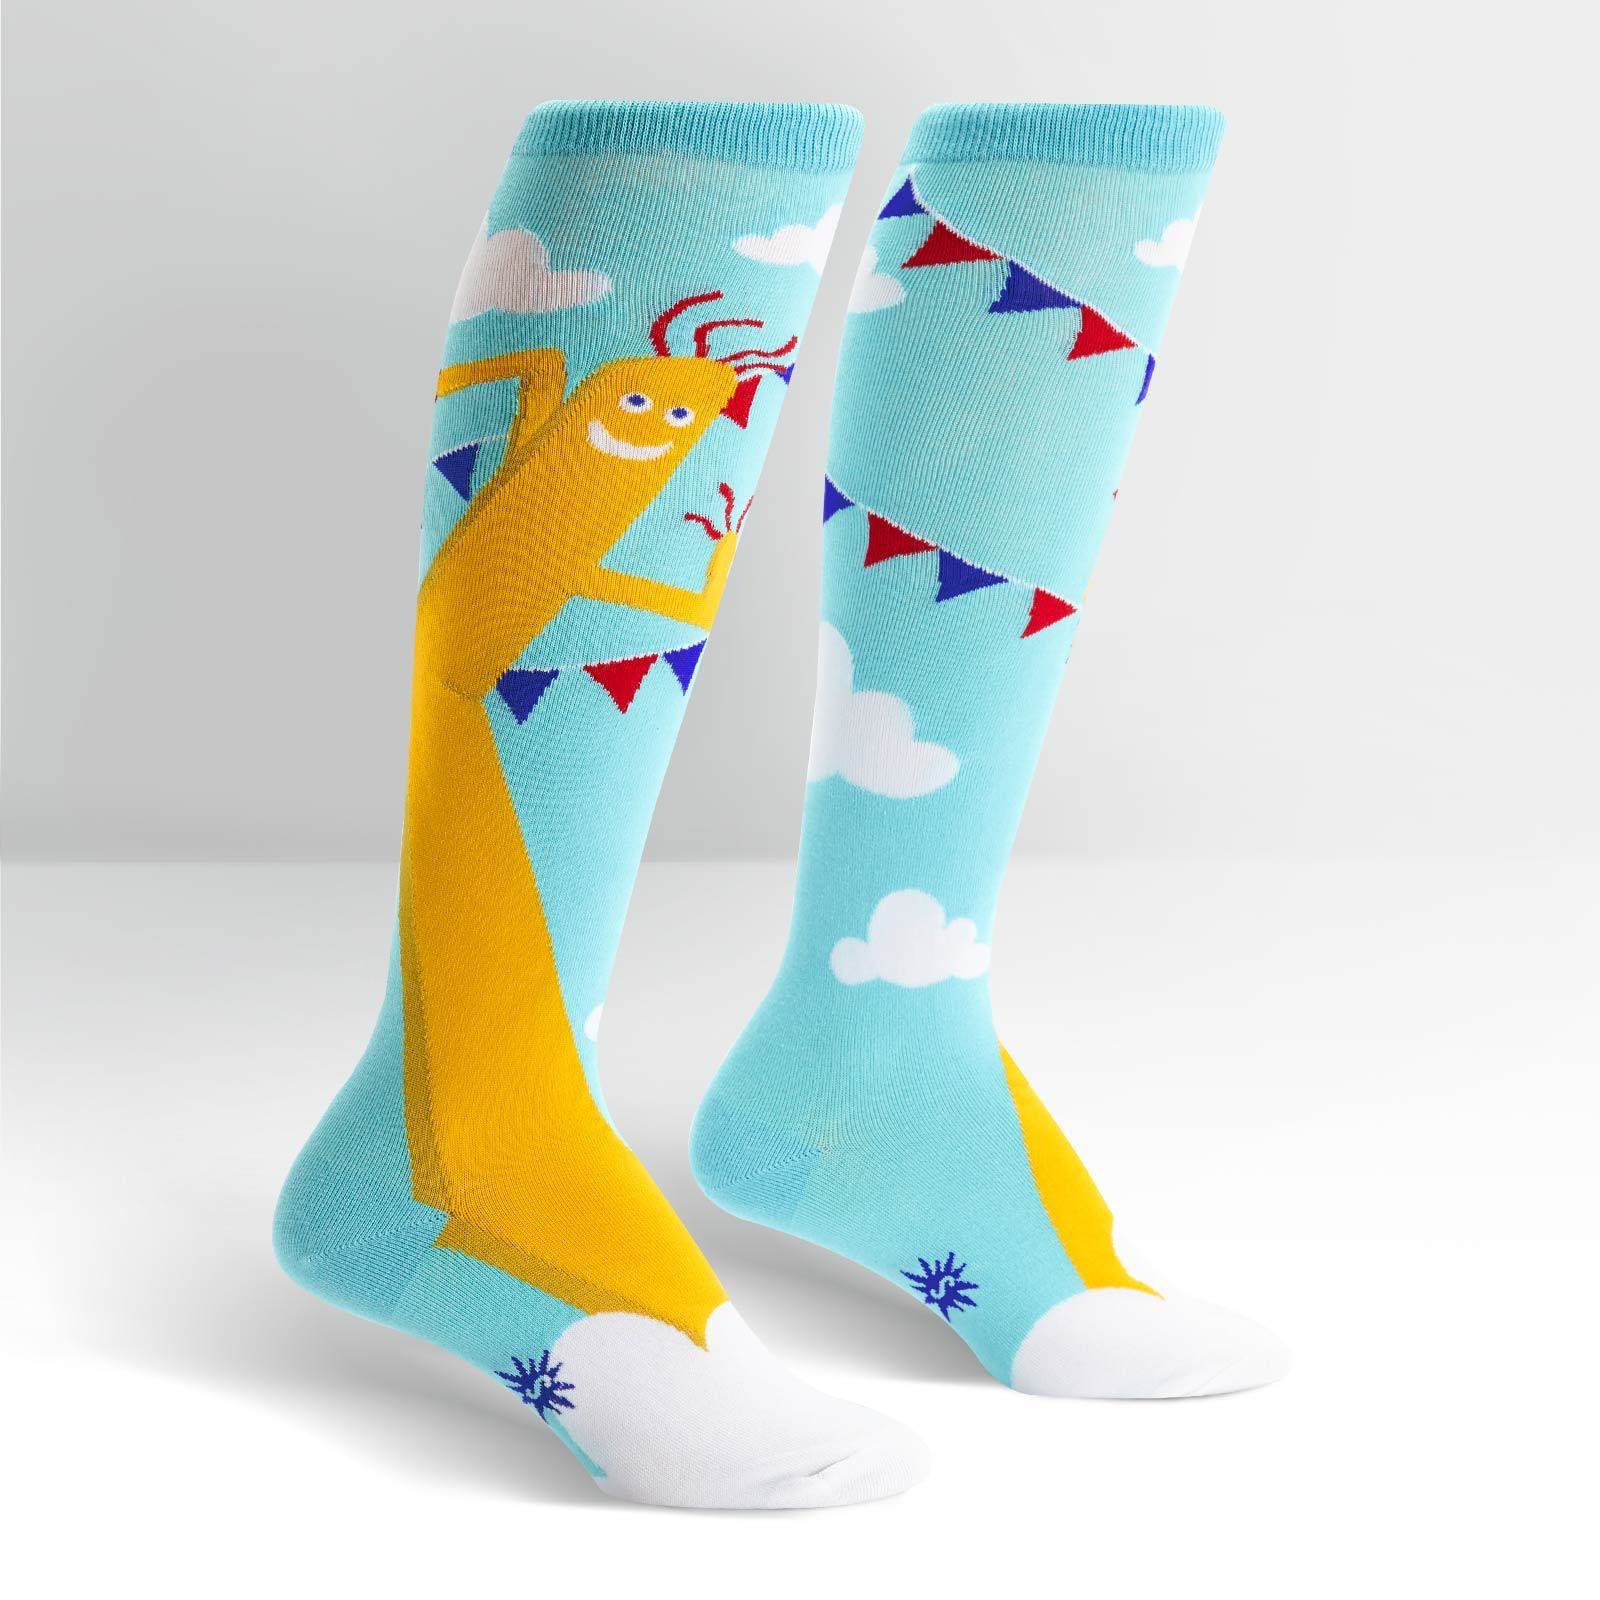 Women's - The Ecstacy Of Mr. Wavy Arms Knee High Socks image